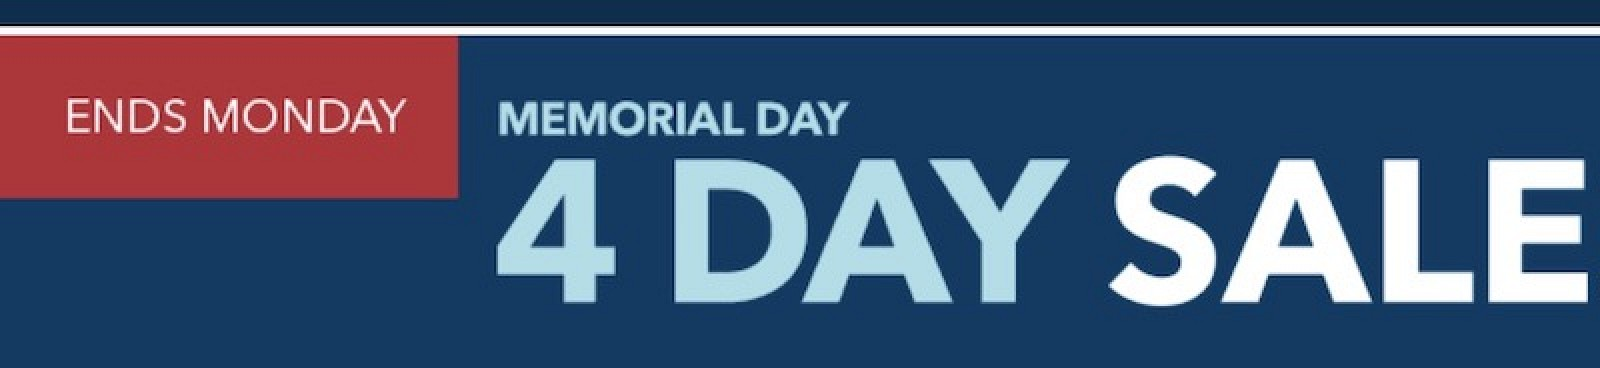 Best Buy Memorial Day Deals Best Buy is open on Memorial Day, with regular store hours - but some of the best deals on major appliances such as refrigerators, washers, dryers, gas ranges, ovens, dishwashers, TVs and laptops are online/5().